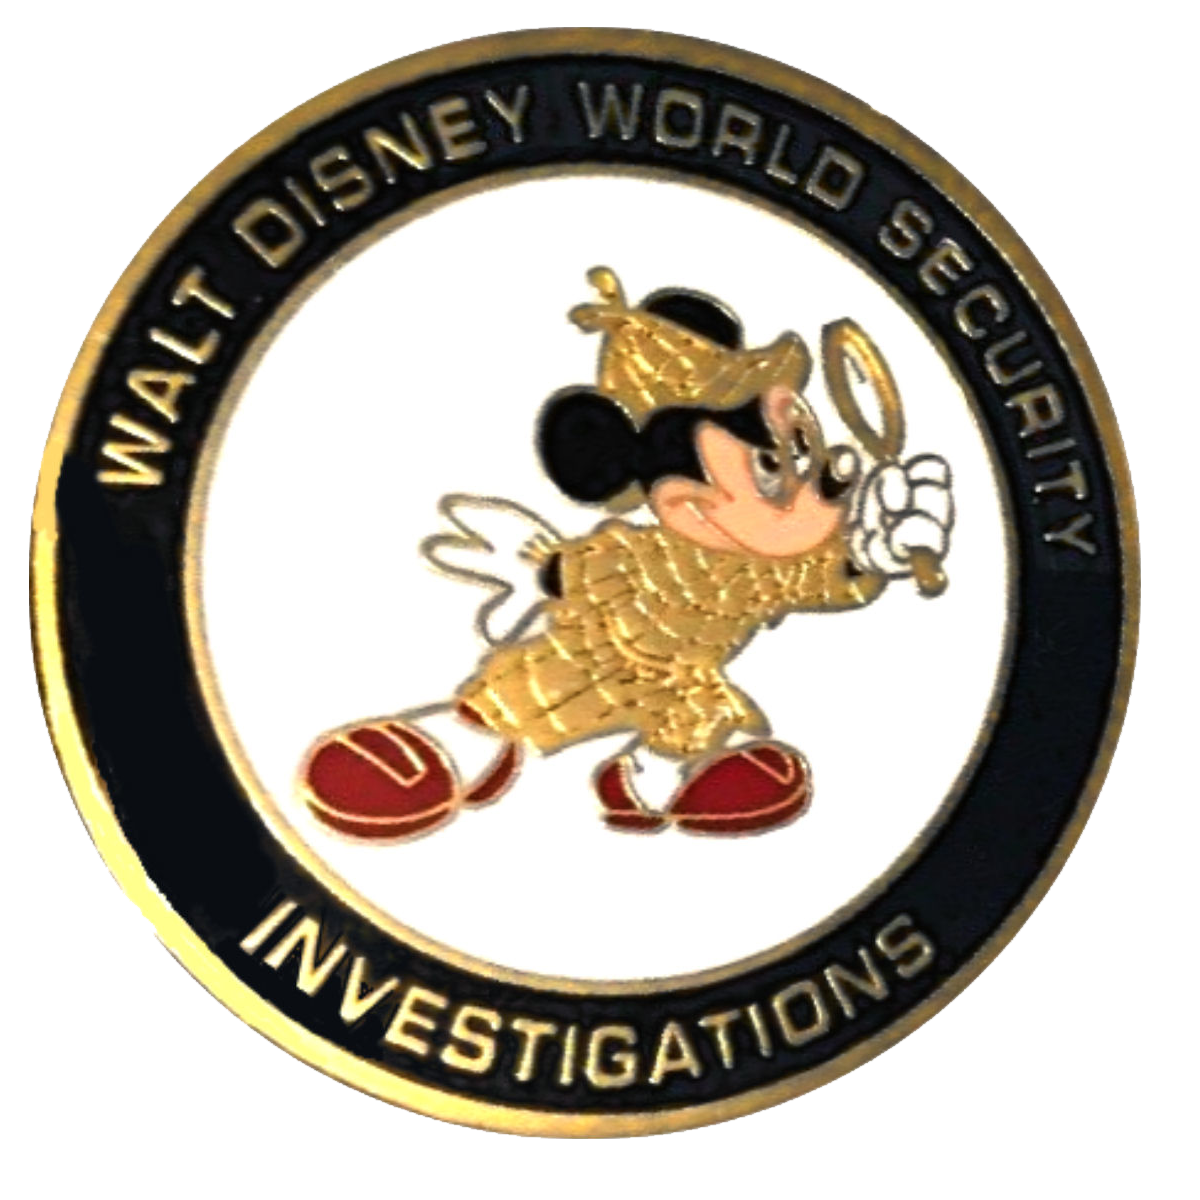 A Sherlockian Challenge Coin from Walt Disney World